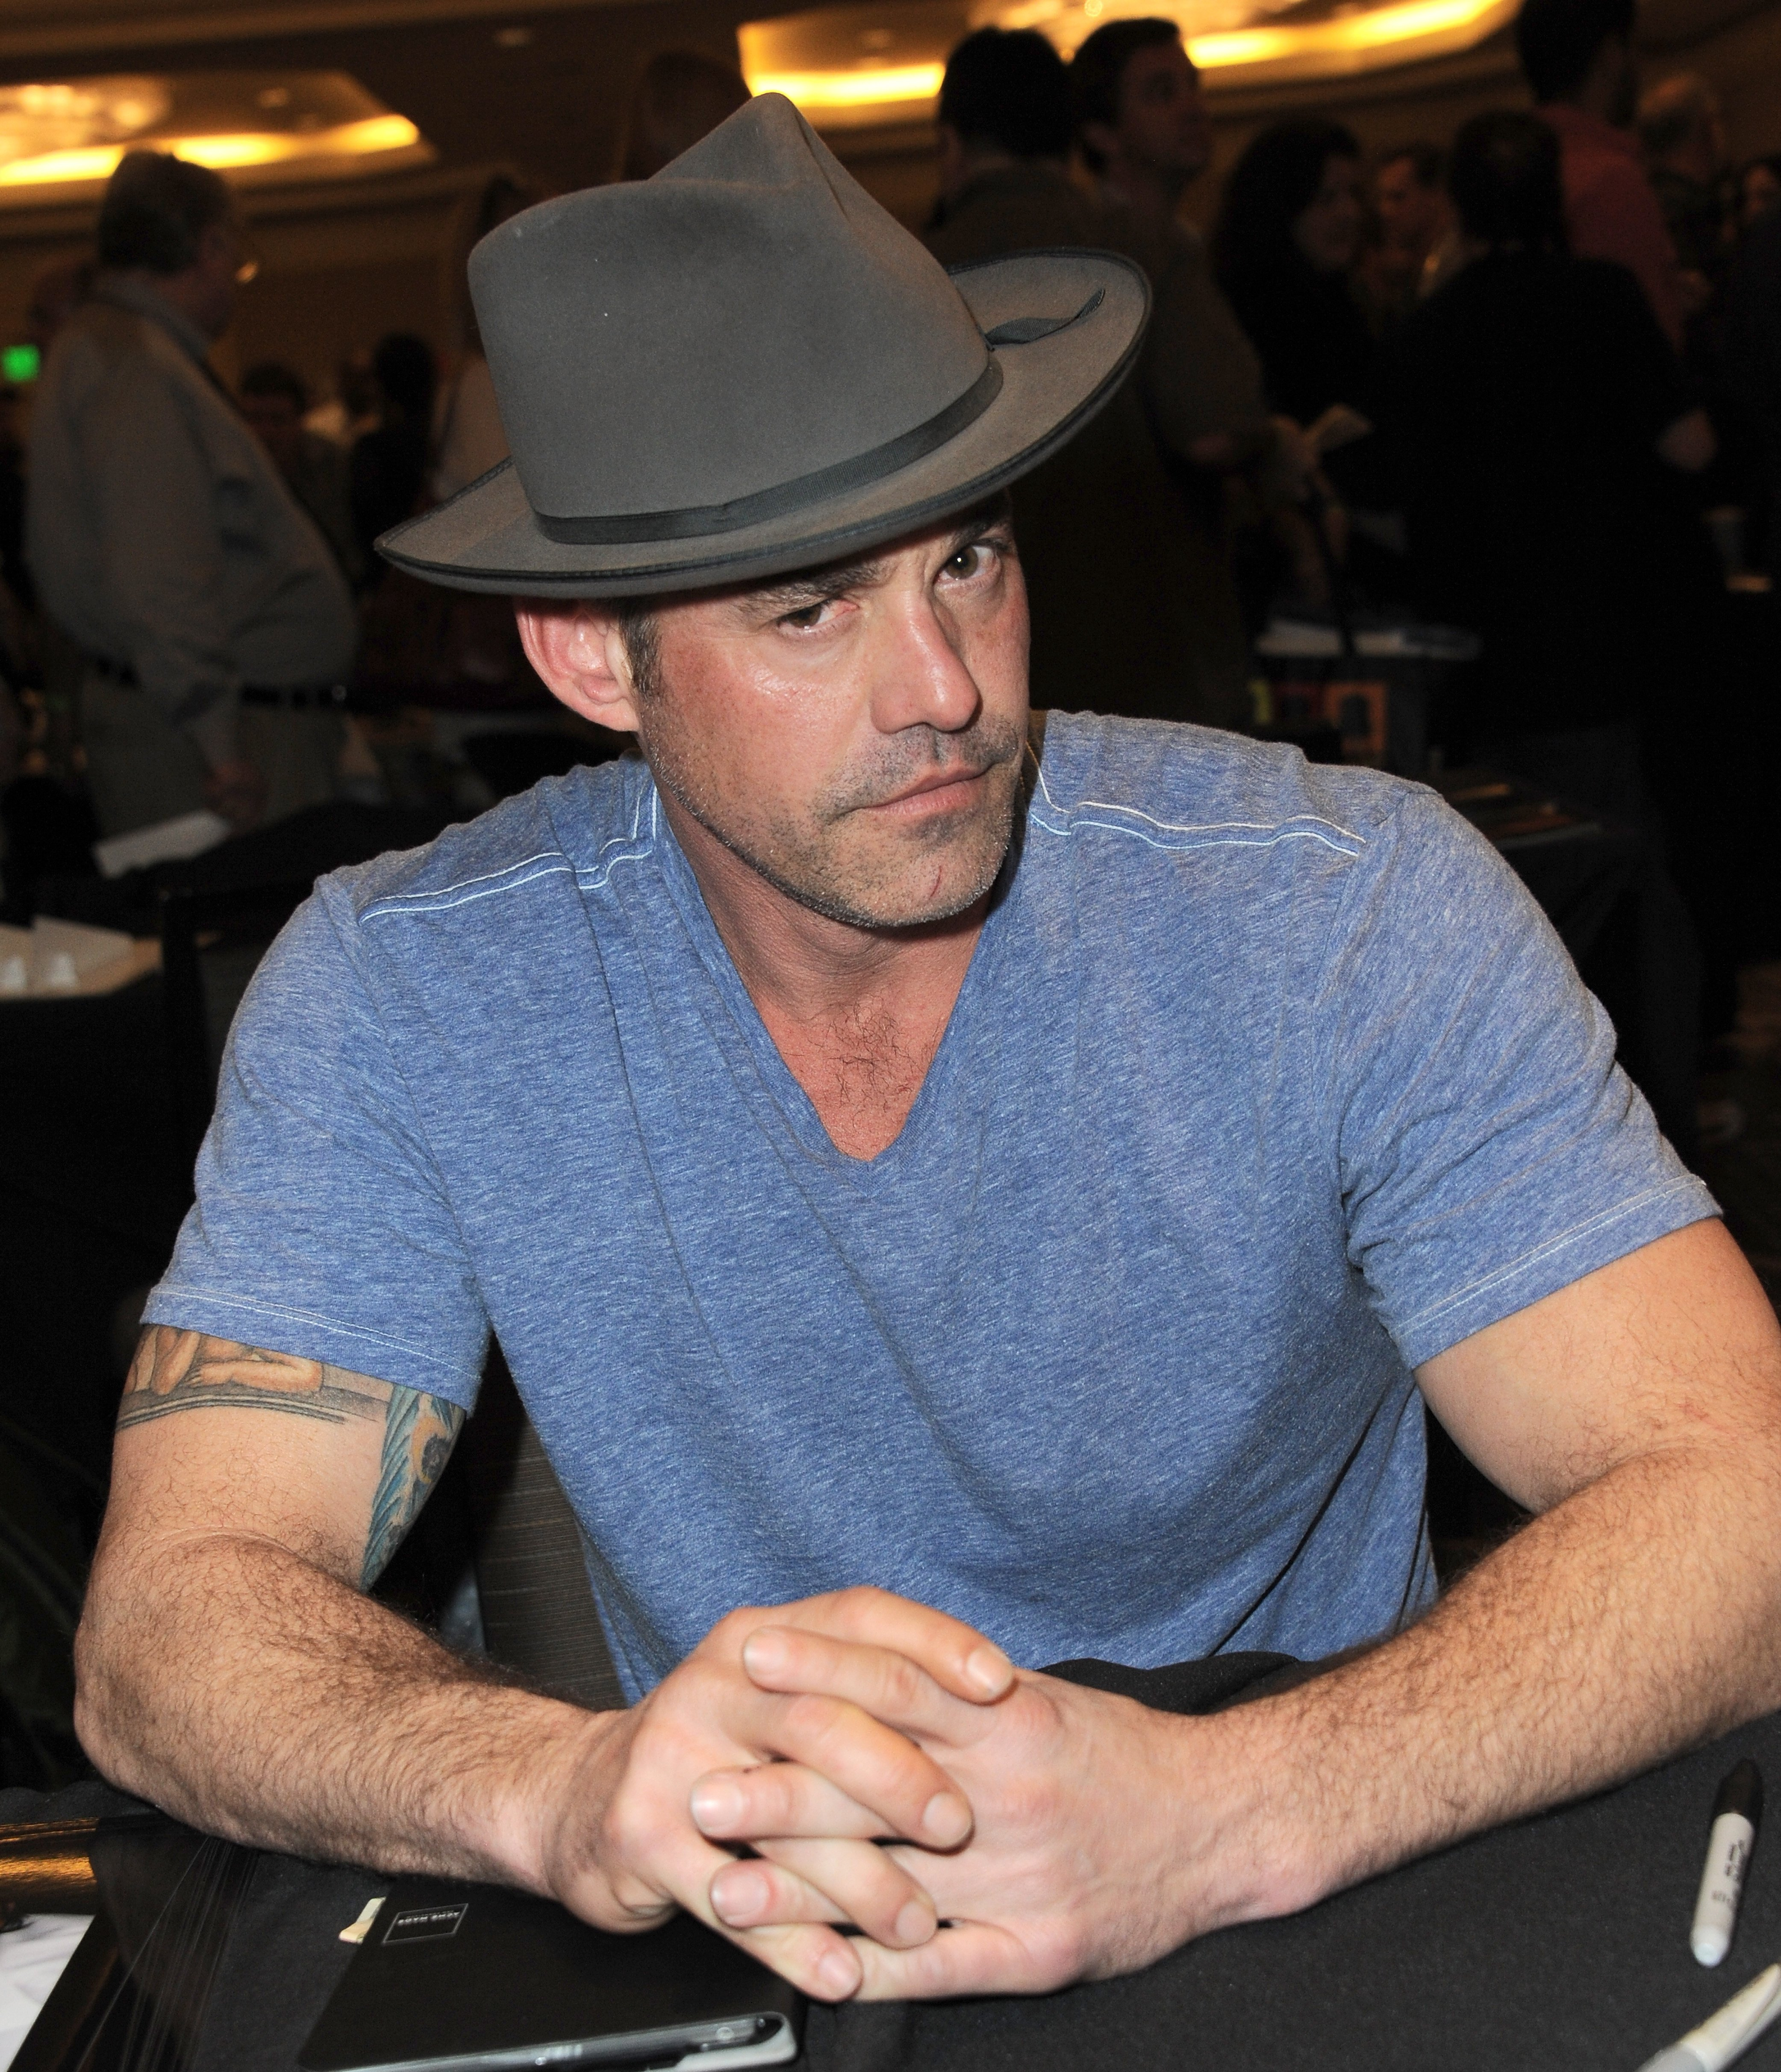 Nicholas Brendon attends The Hollywood Show in Los Angeles, California on January 24, 2015 | Photo: Getty Images